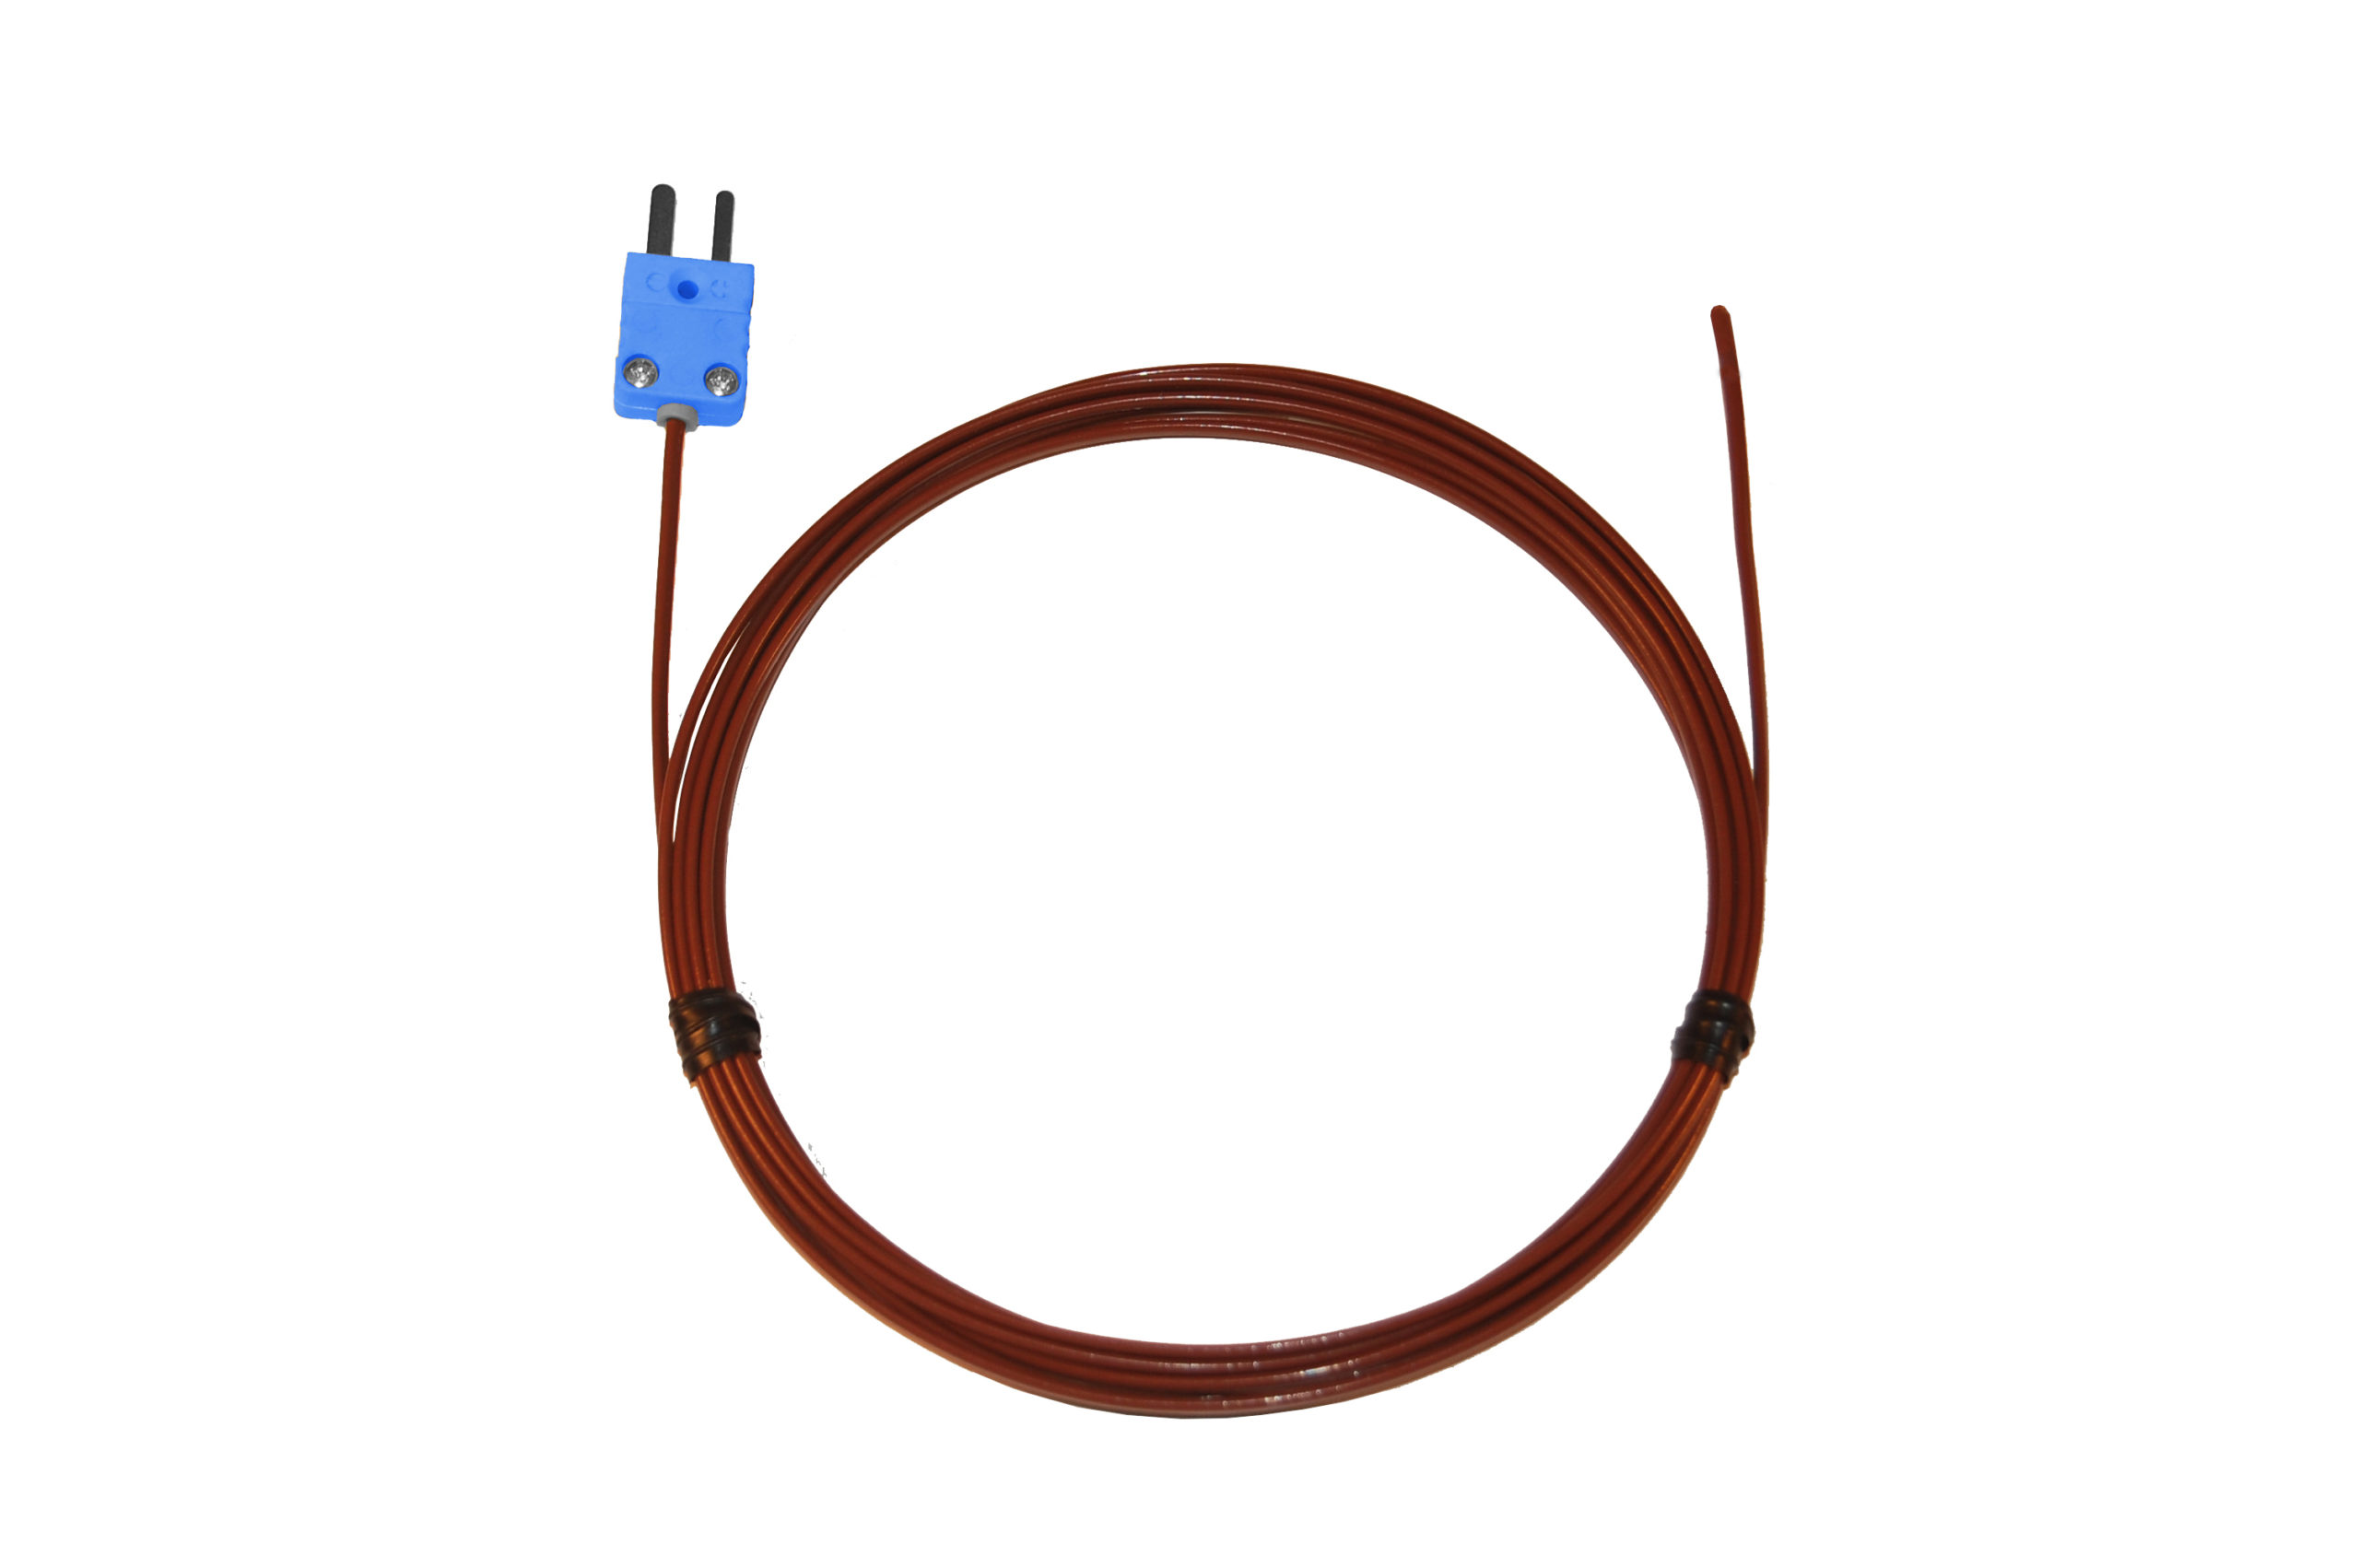 08466-83 Type-T, FEP-Insulated Probe, Coated Junction, Mini-Connector, Ungrounded, 24 -Gauge